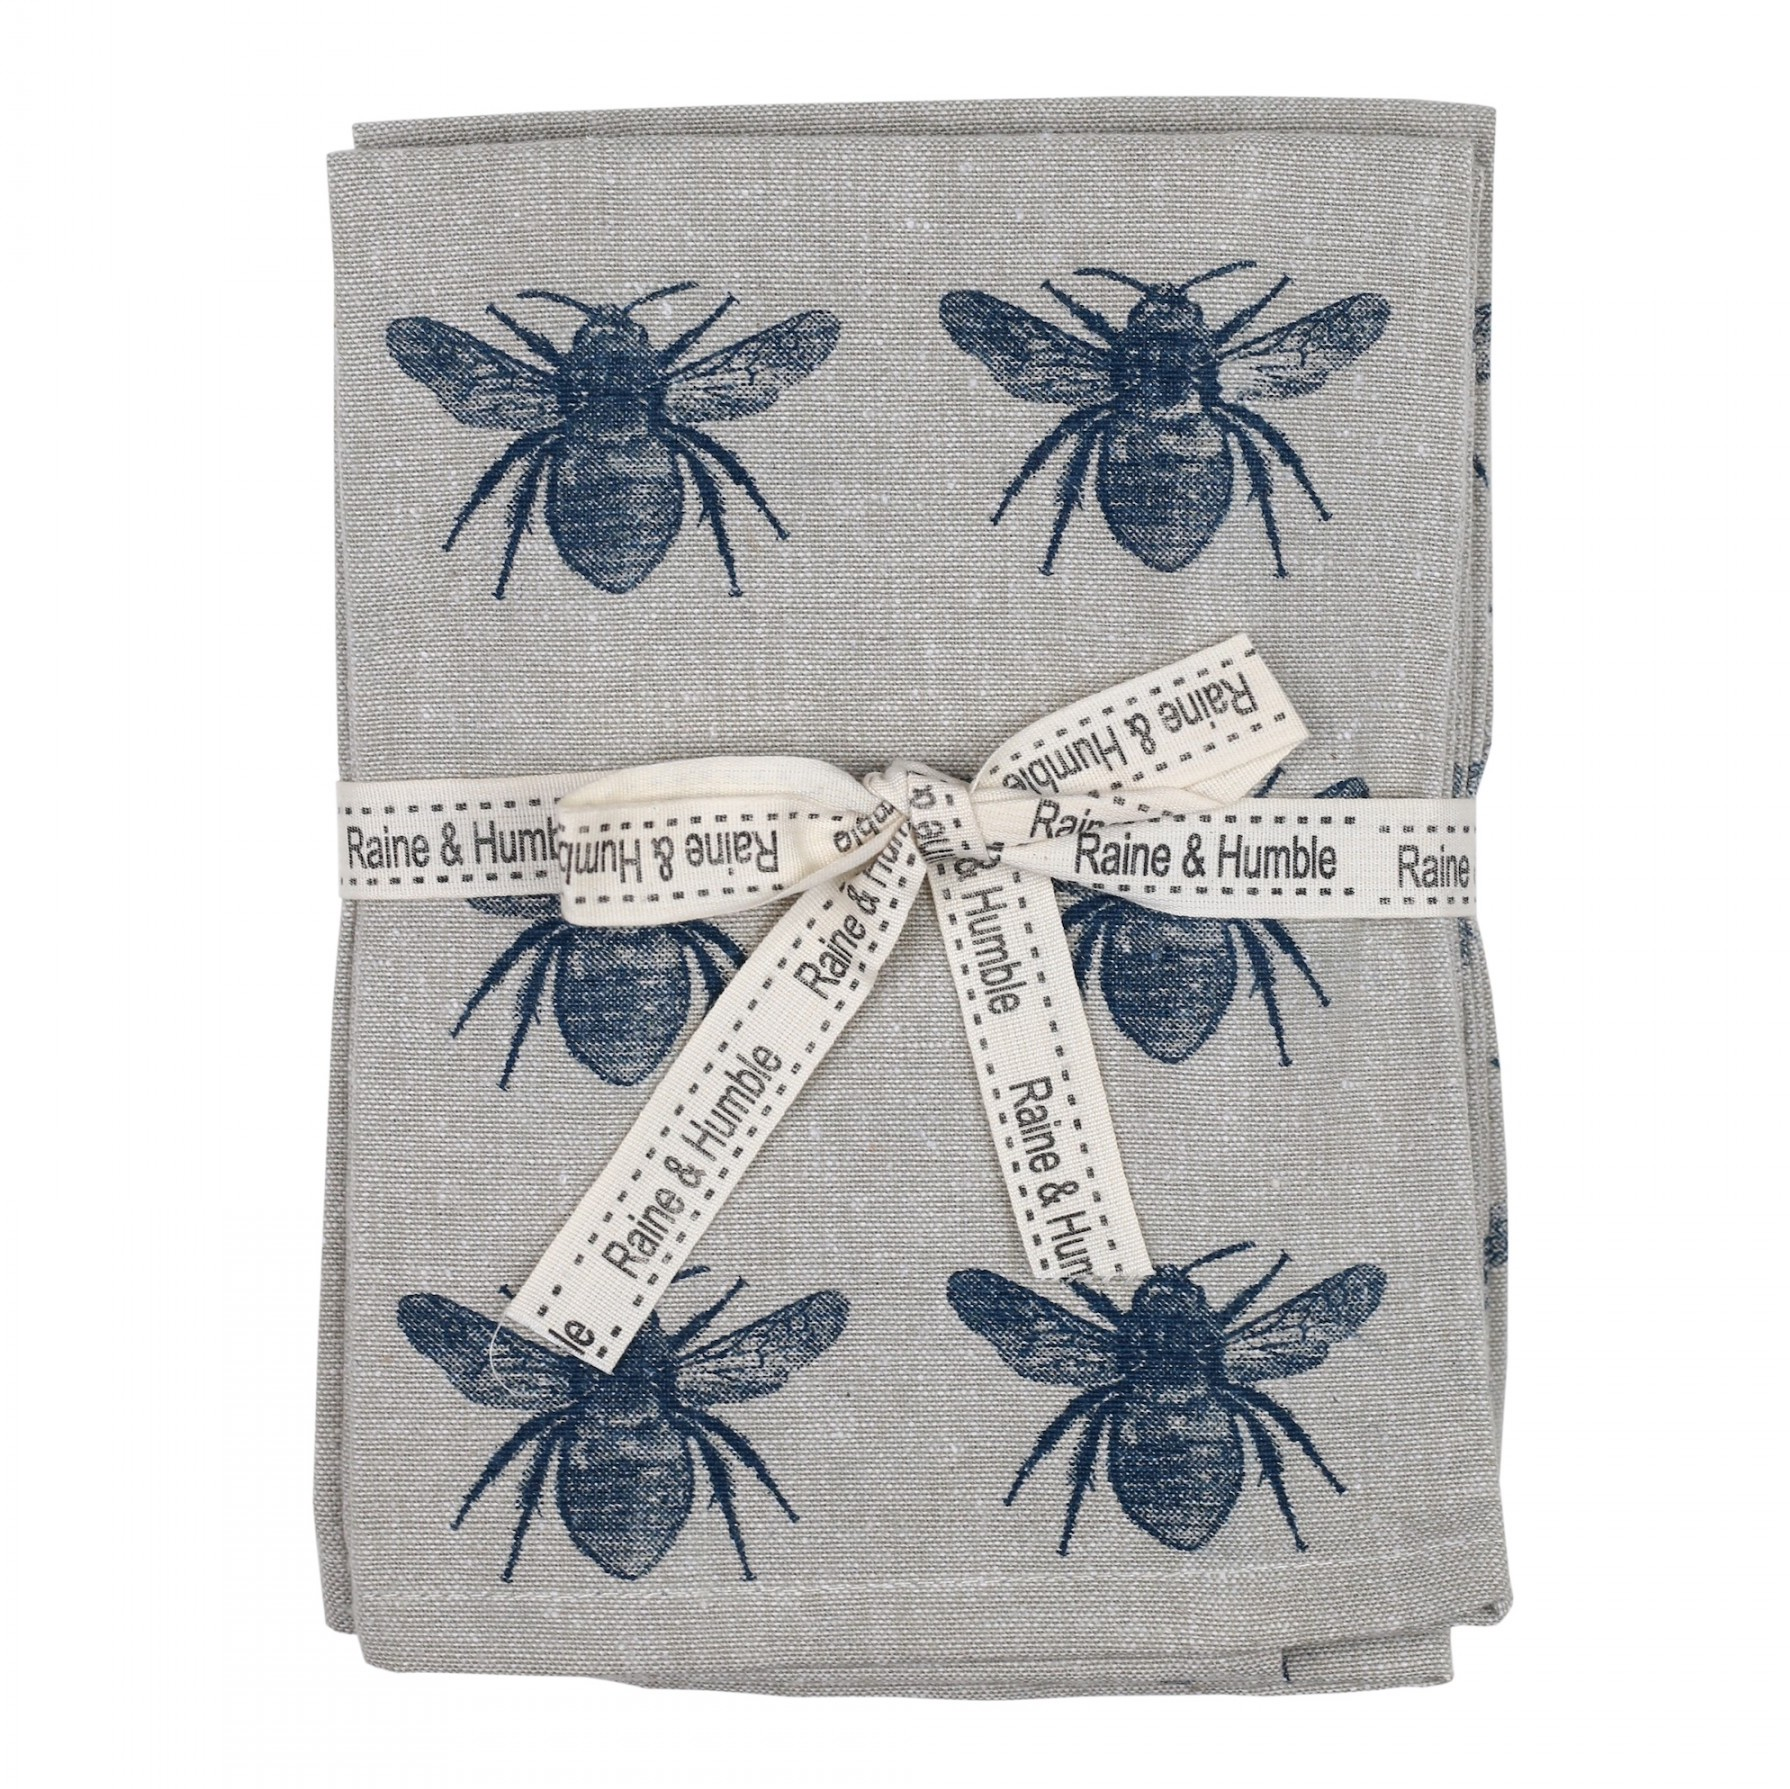 Set of 4 Honey Bee Cloth Napkins in Prussian Blue